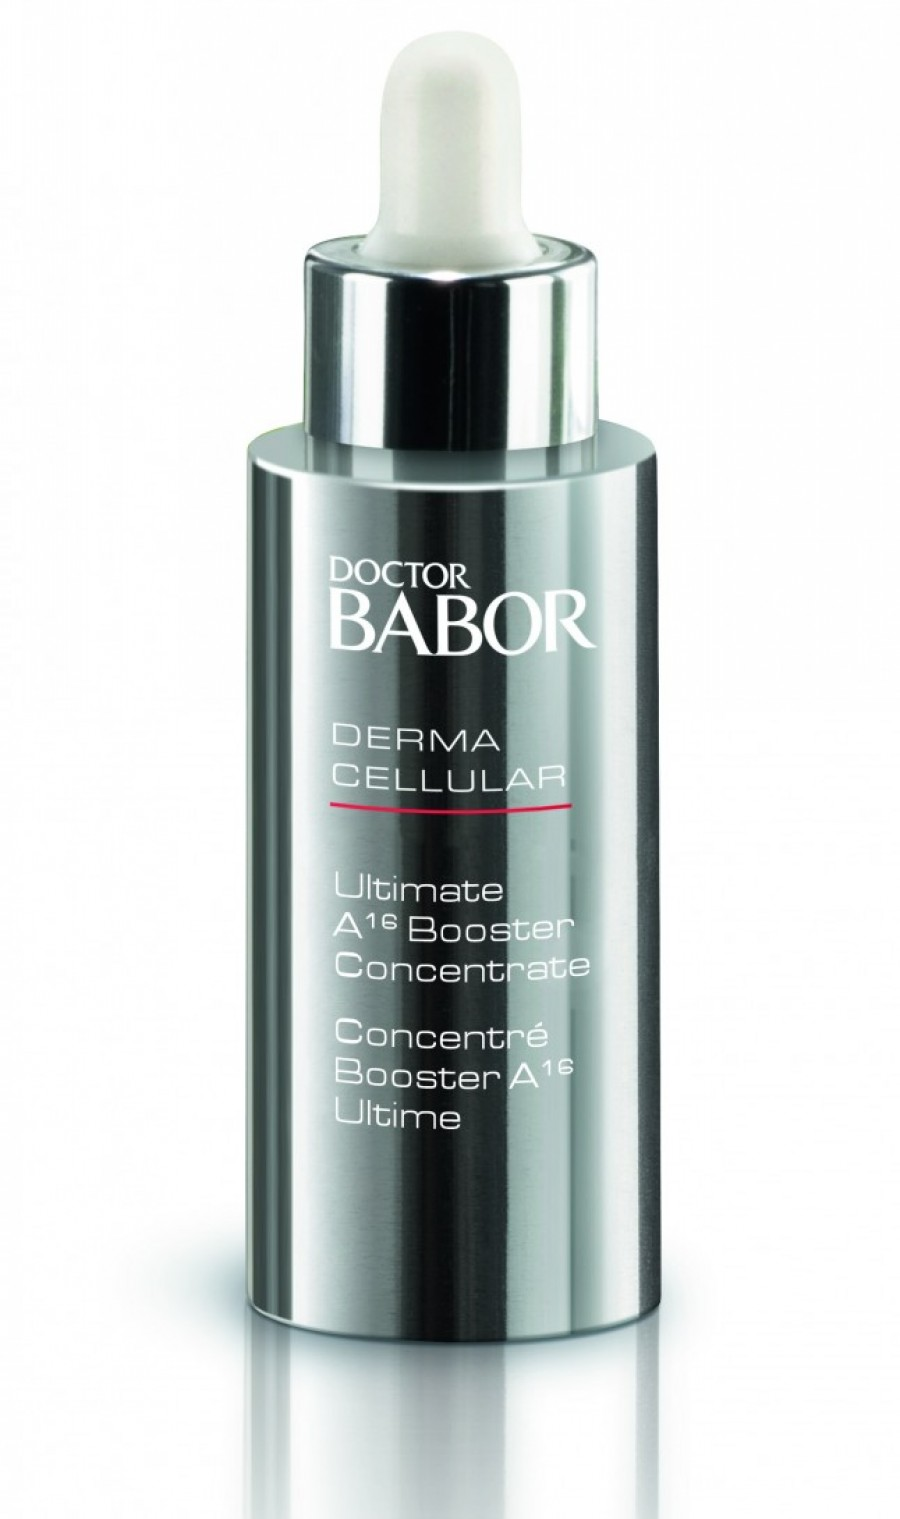 DOCTOR BABOR DERMA CELLULAR Ultimate_A16_Booster Concentrate